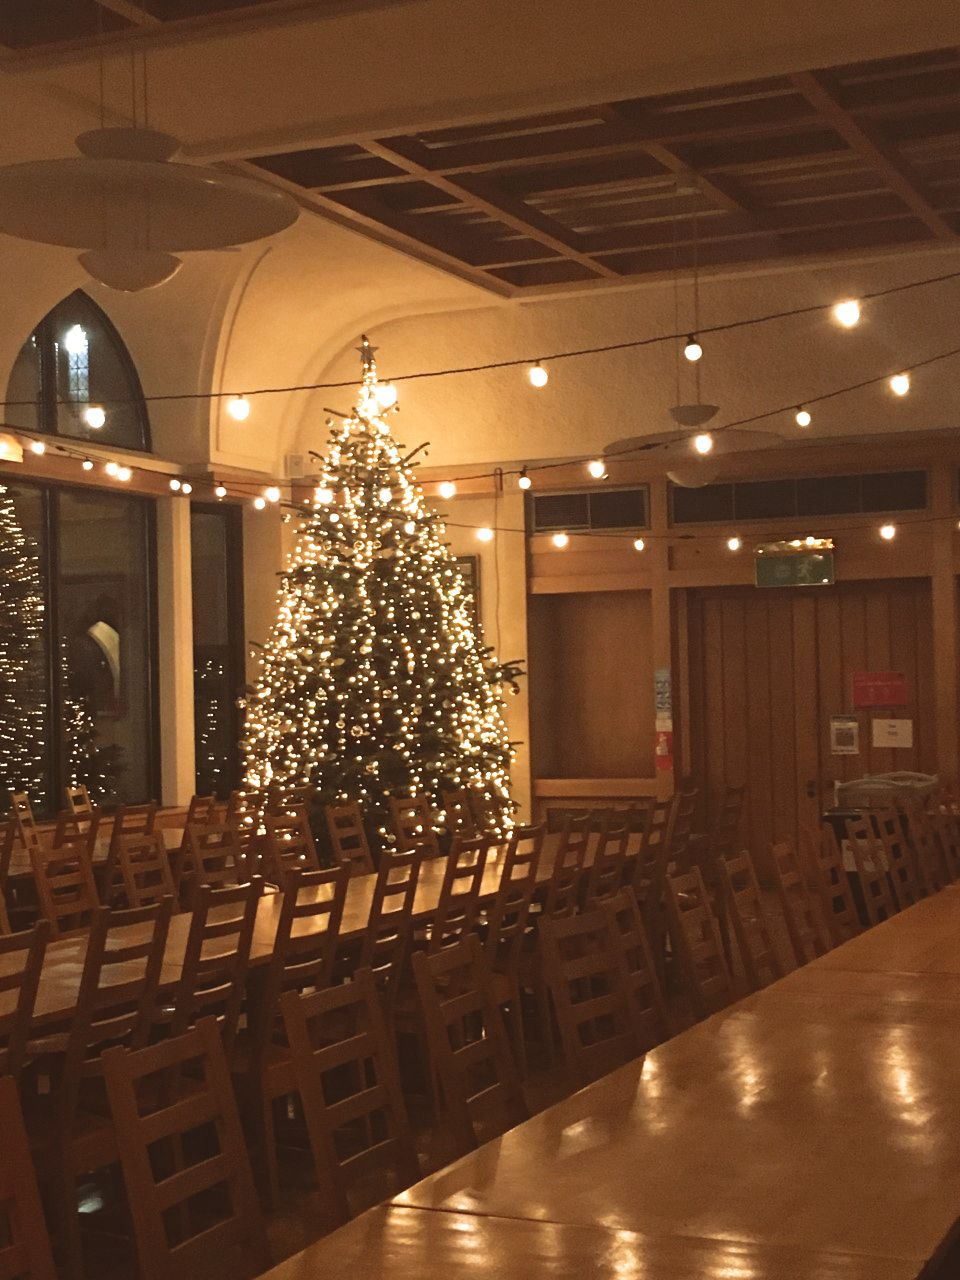 A picture of the Christmas tree in the College hall, lit up with lights and with purple and silver decorations.